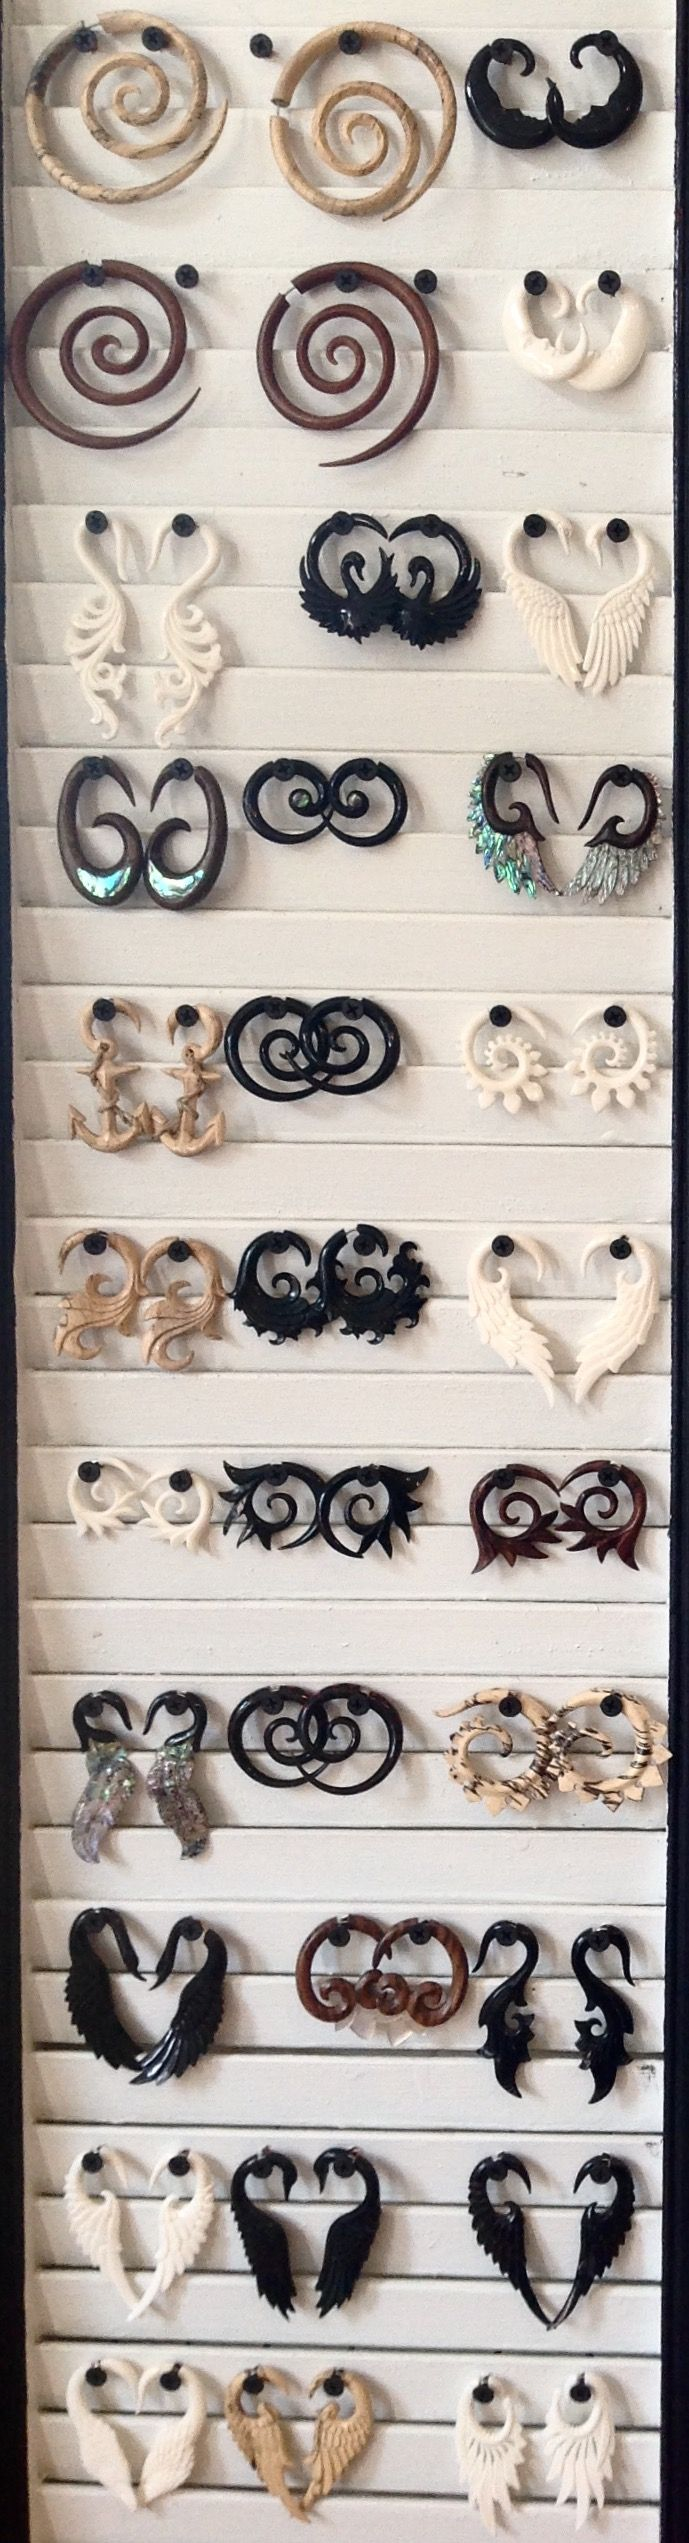 Bridge Street Bazaar is your source for the largest collection of wholesale fake gauge earrings, split plugs, and faux tapers.  Contact us for B2B inquiries!